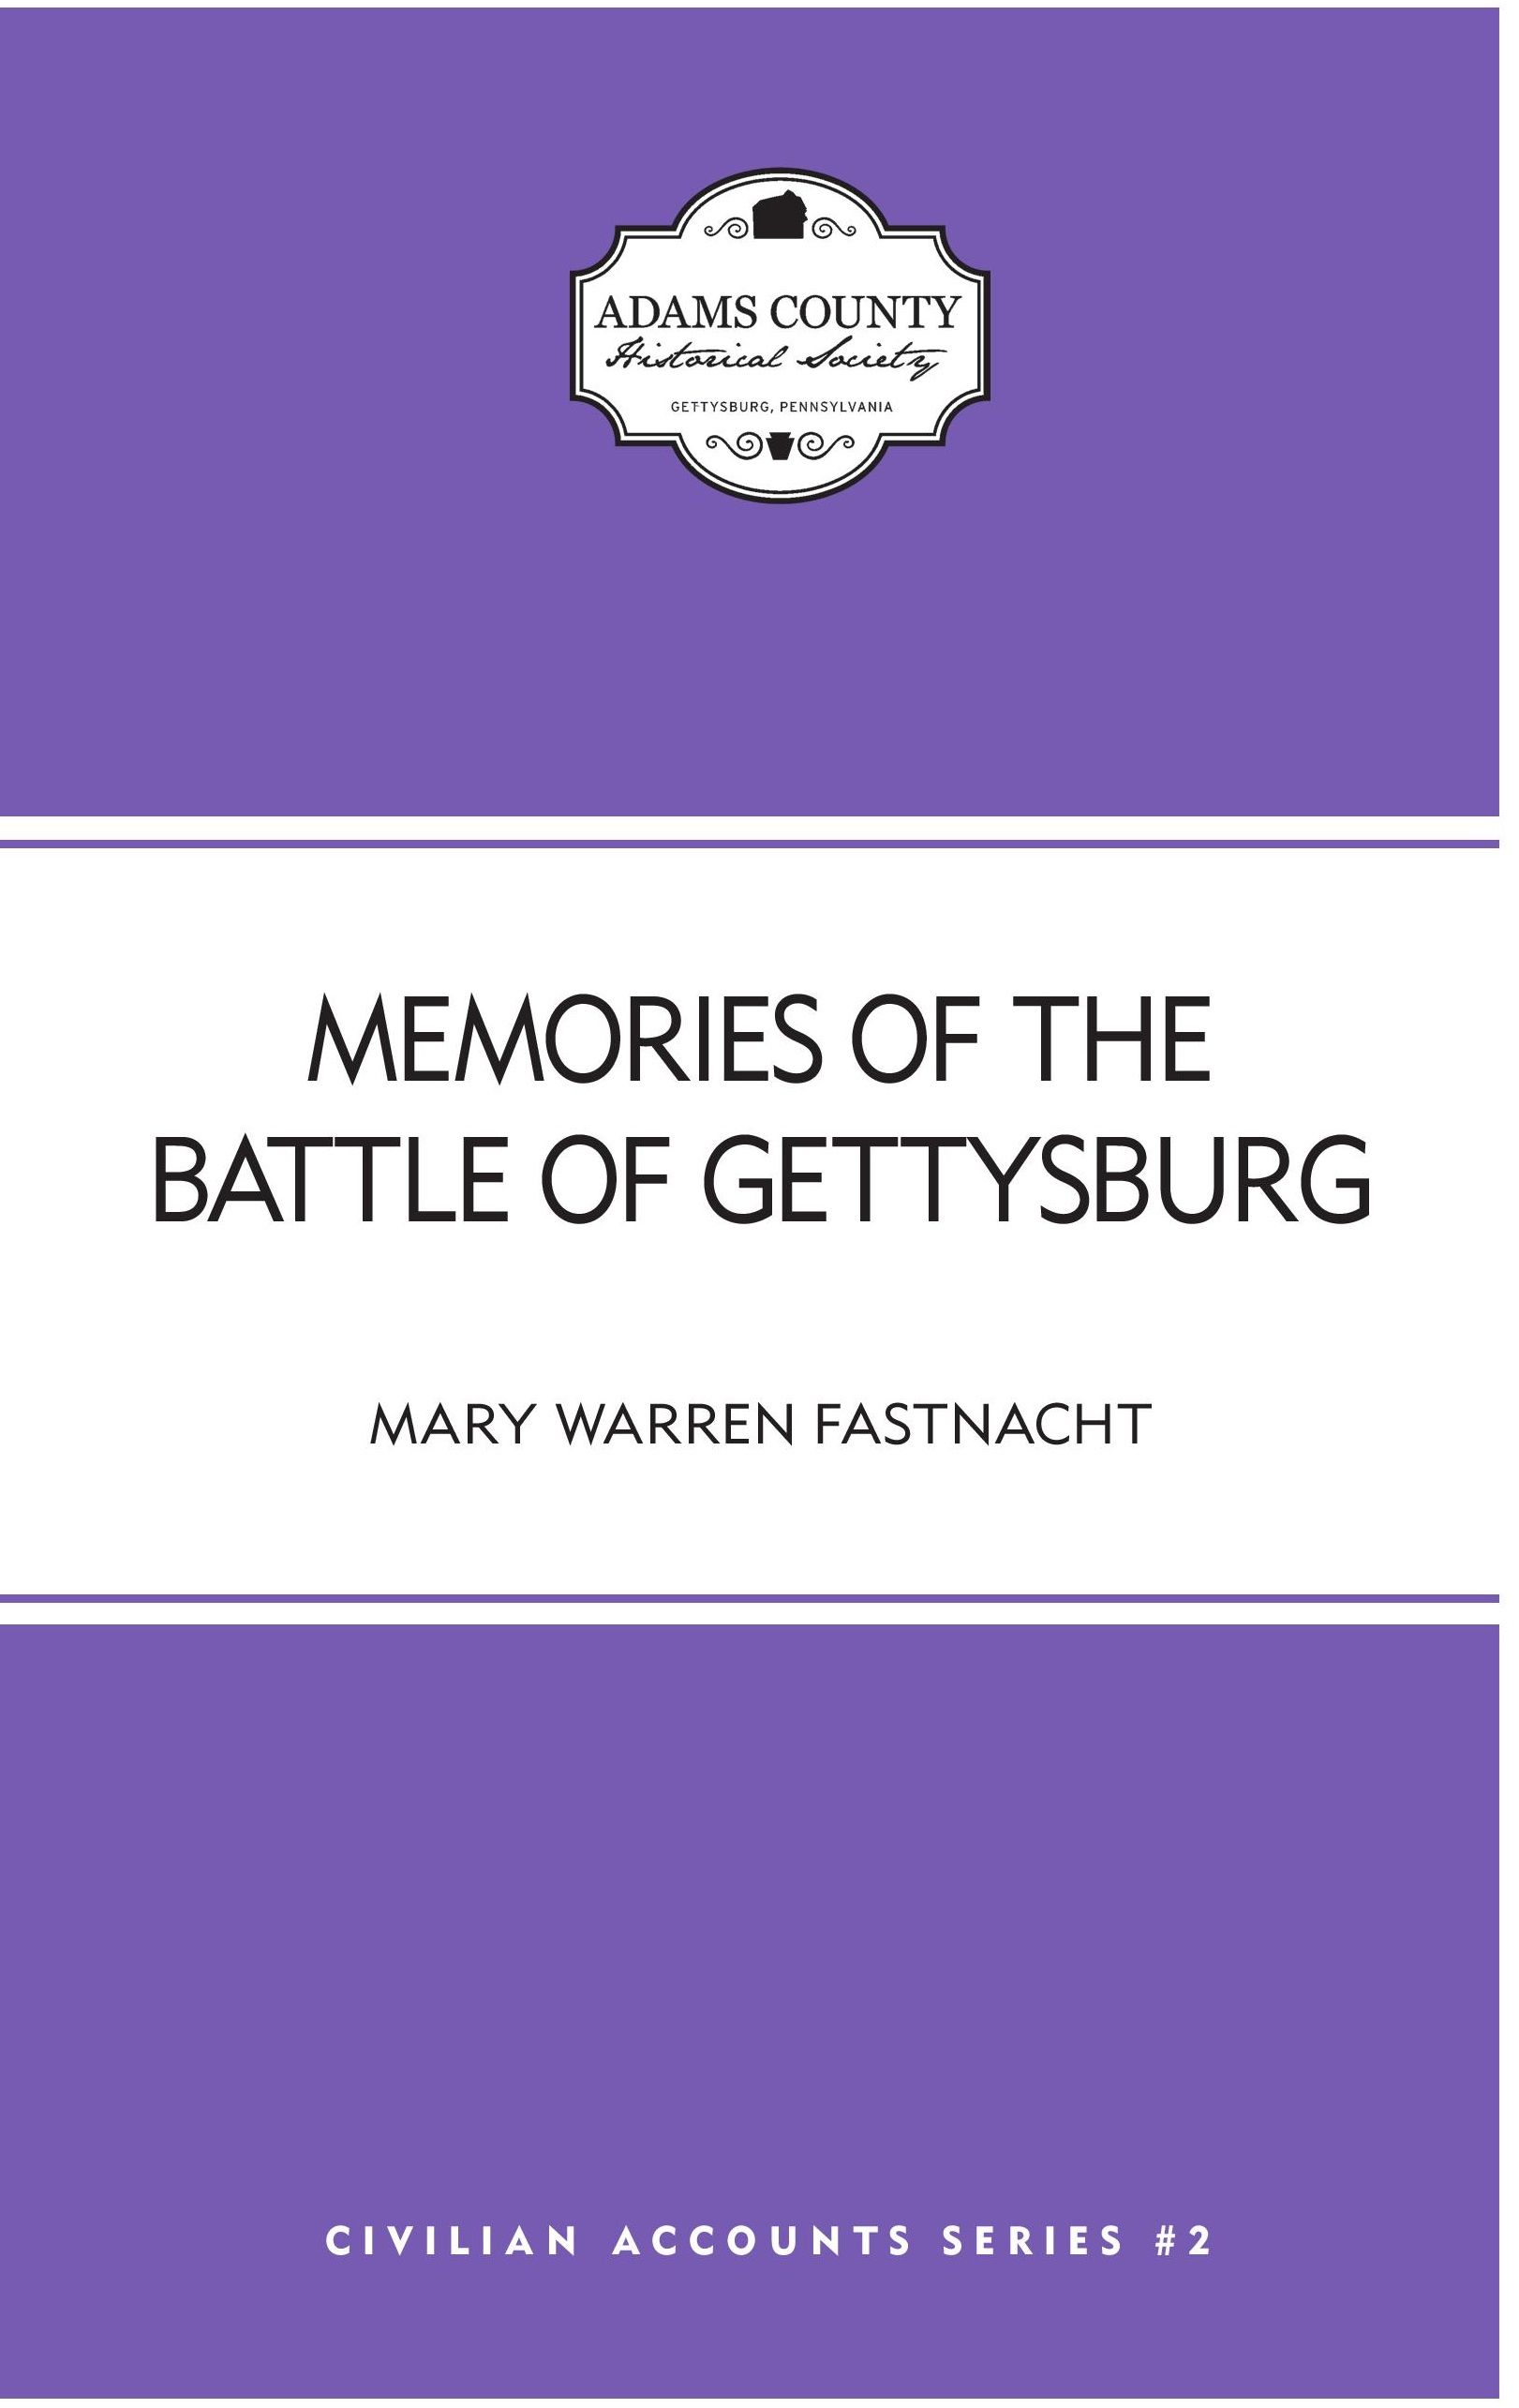 Memories of the Battle of Gettysburg (Mary Warren Fastnacht)